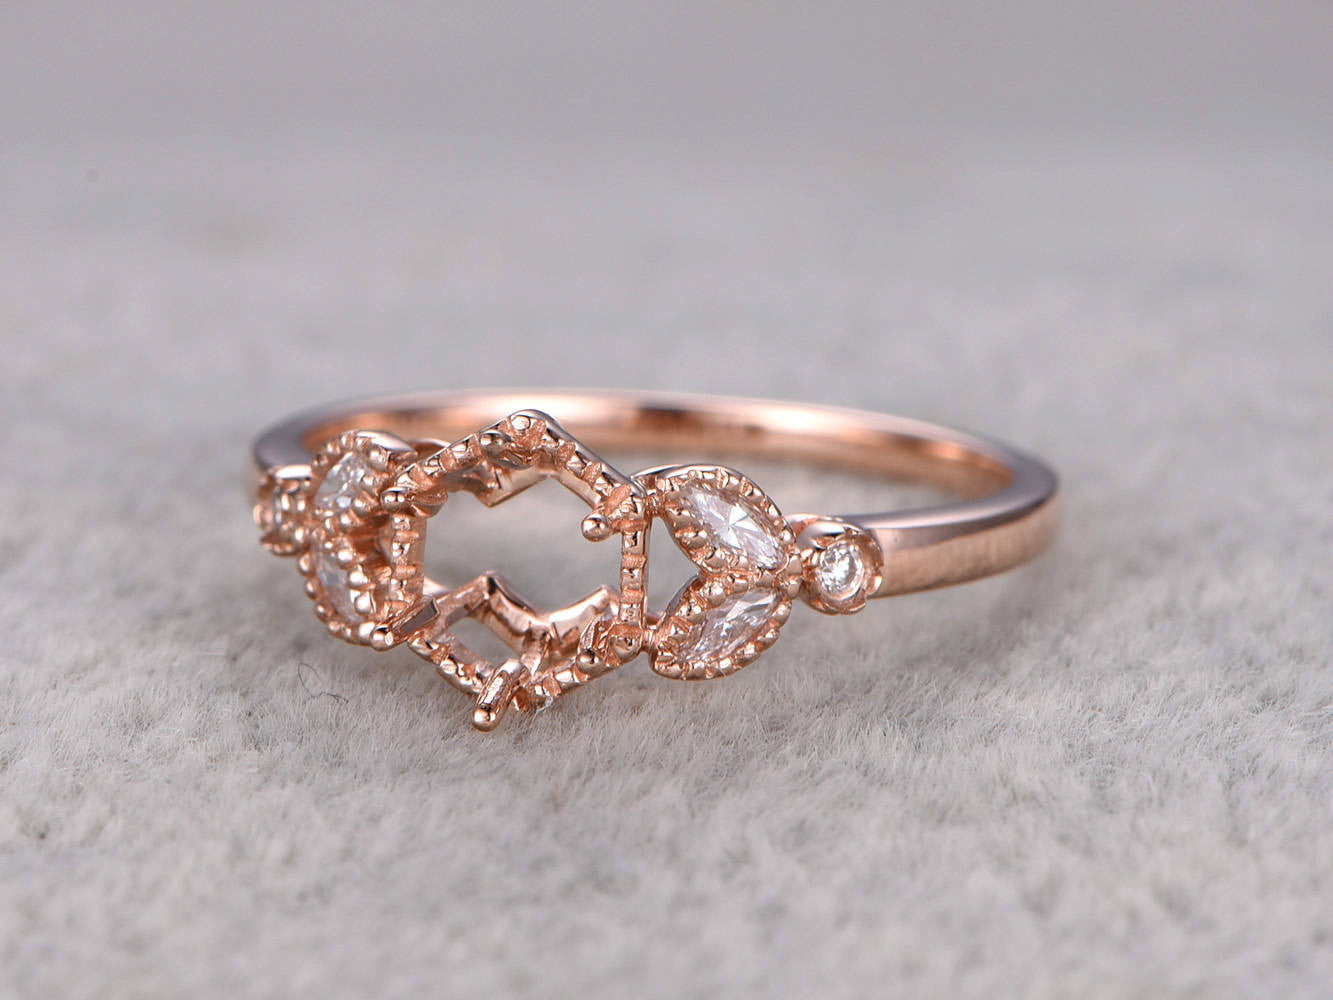 5mm Round Cut Semi Mount ring,Rose gold ring setting,14k,Floral design,hexagon Halo,Marquise diamond leaf Ring